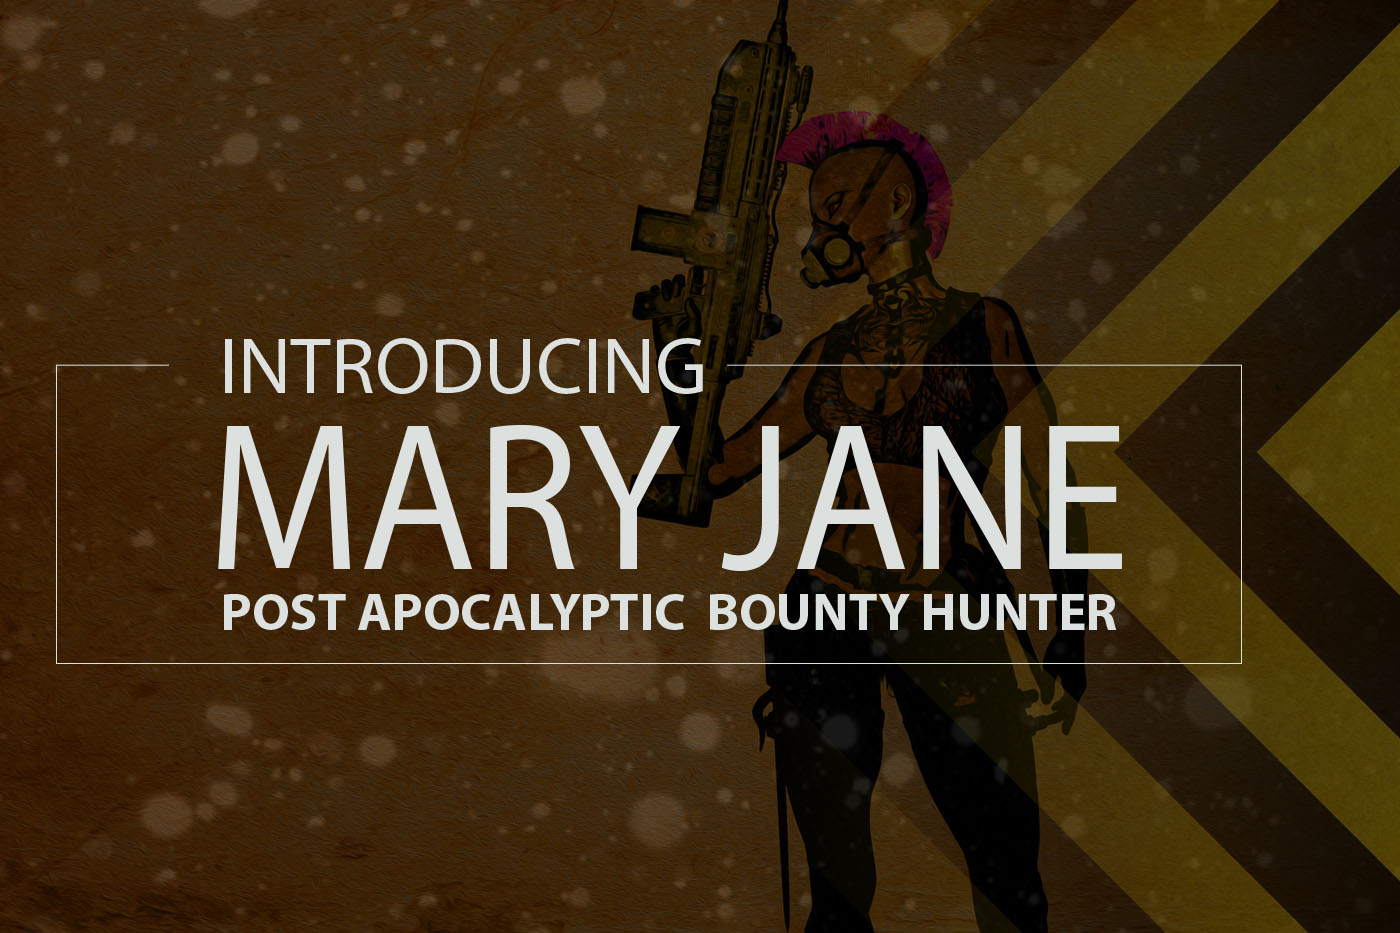 The Chronicles of Mary Jane Post Apocalyptic Bounty Hunter